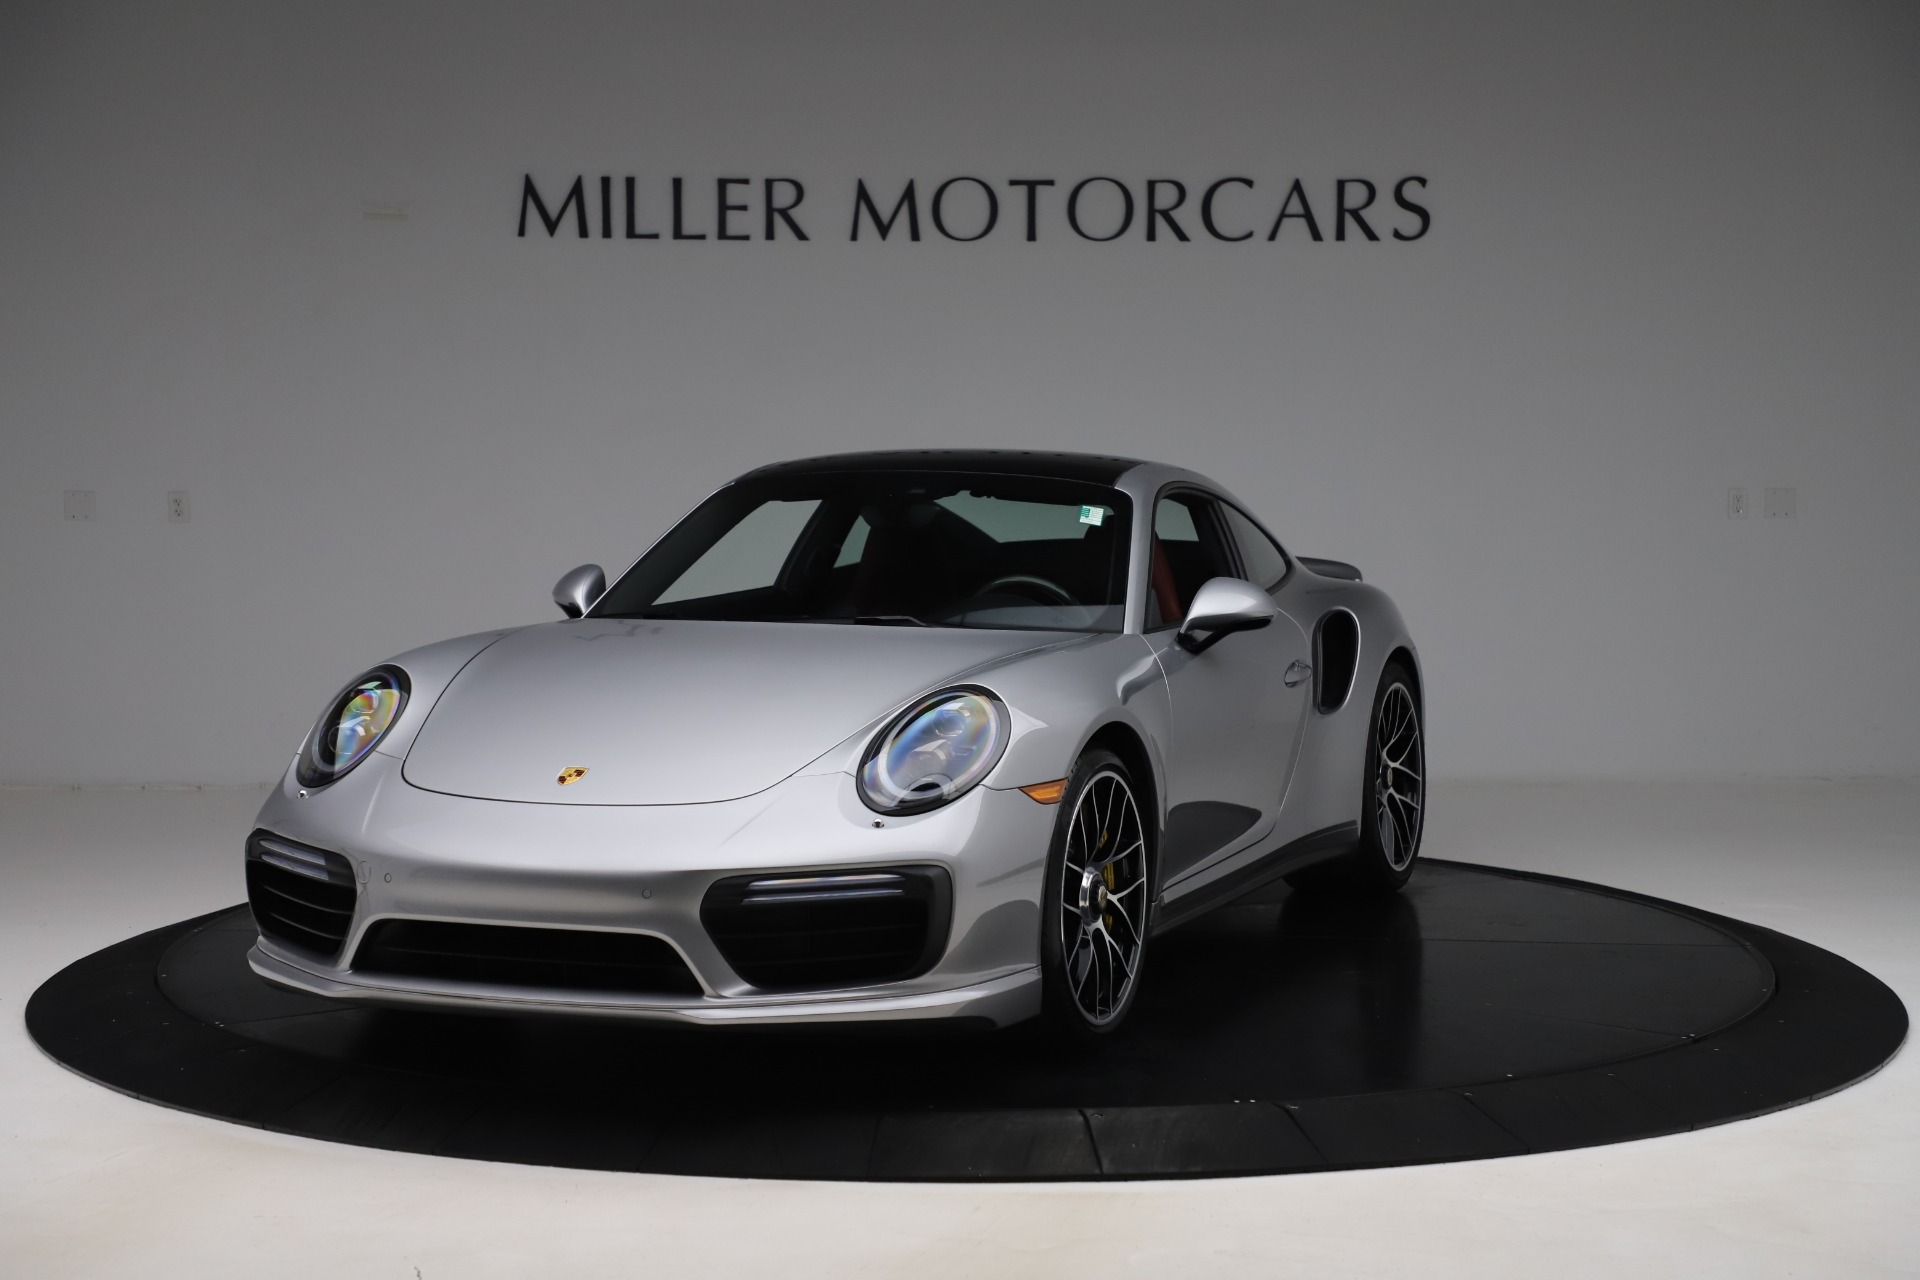 Used 2017 Porsche 911 Turbo S for sale $154,900 at Maserati of Westport in Westport CT 06880 1